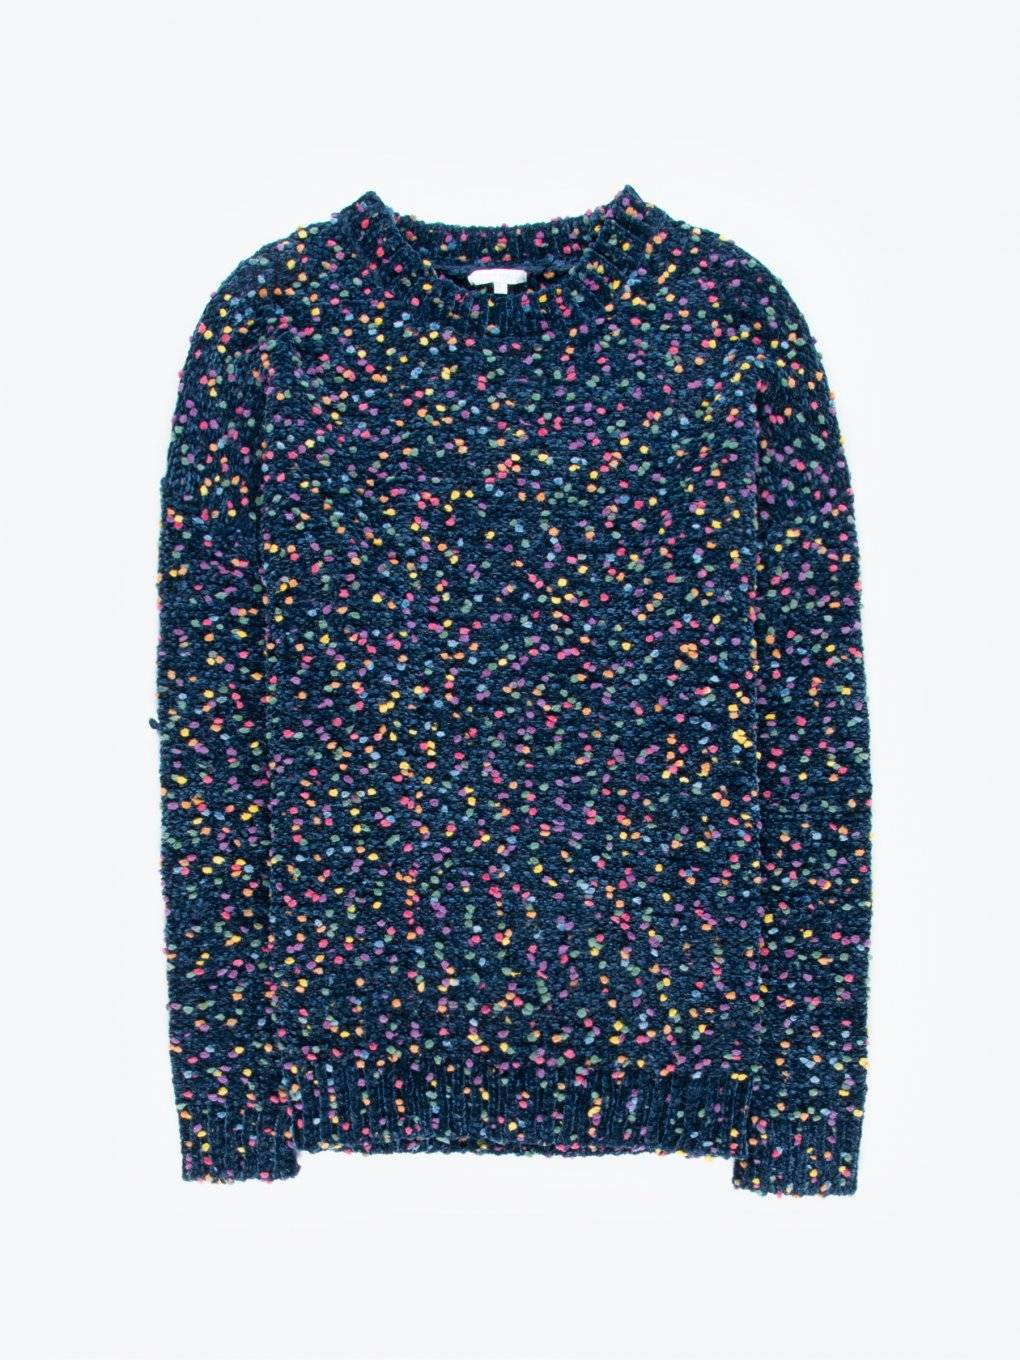 Colourful jumper